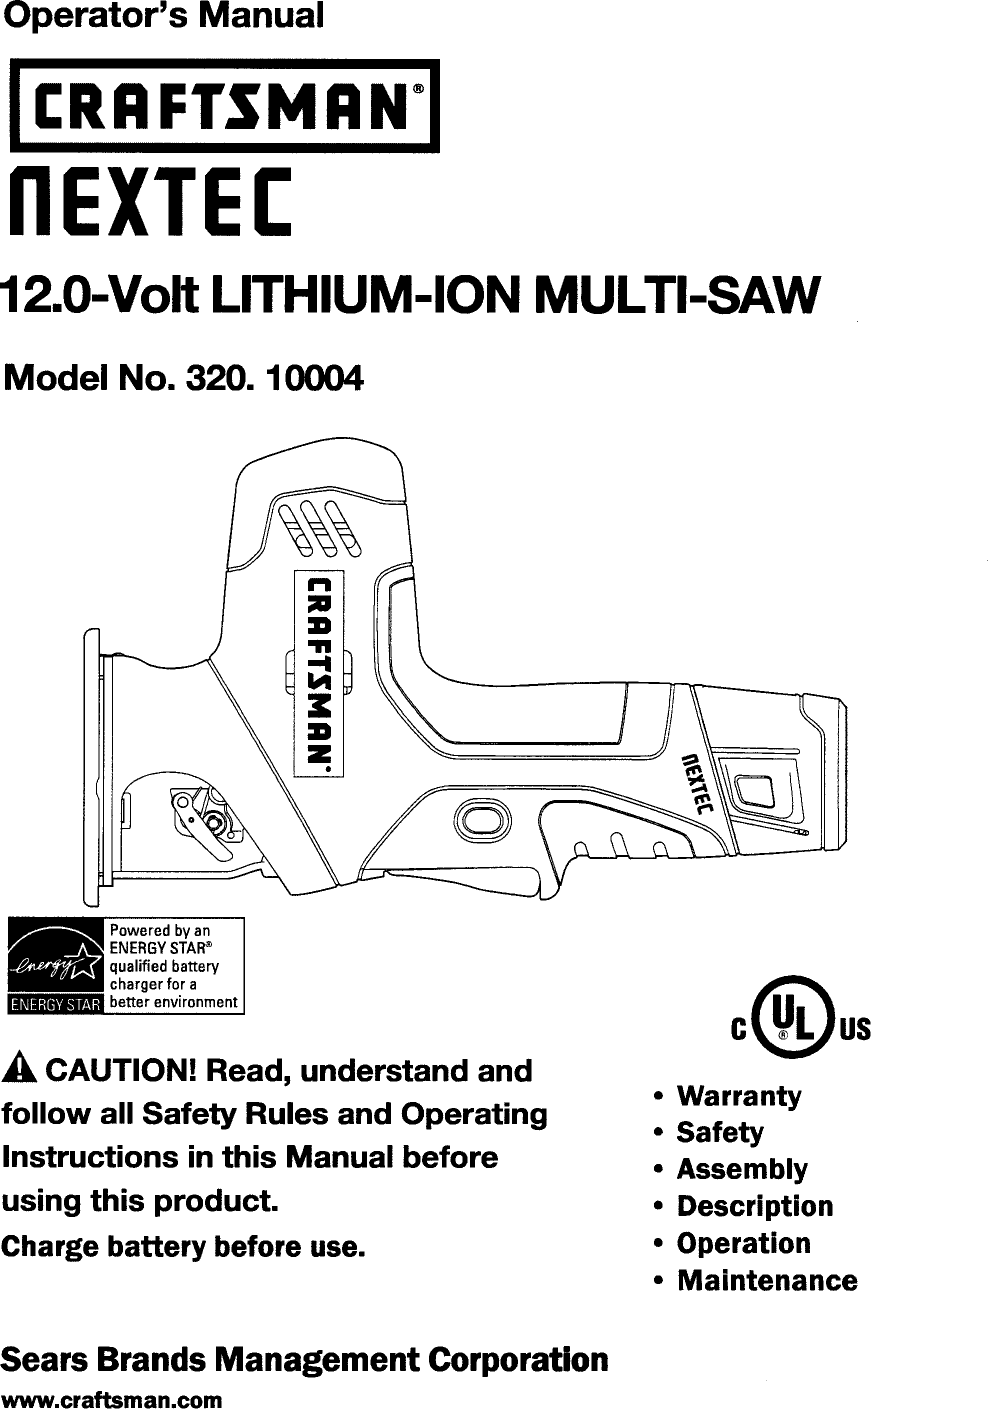 Craftsman 32010004 User Manual Saw Manuals And Guides L1005236 Lithiumion Battery Charger One Schematic